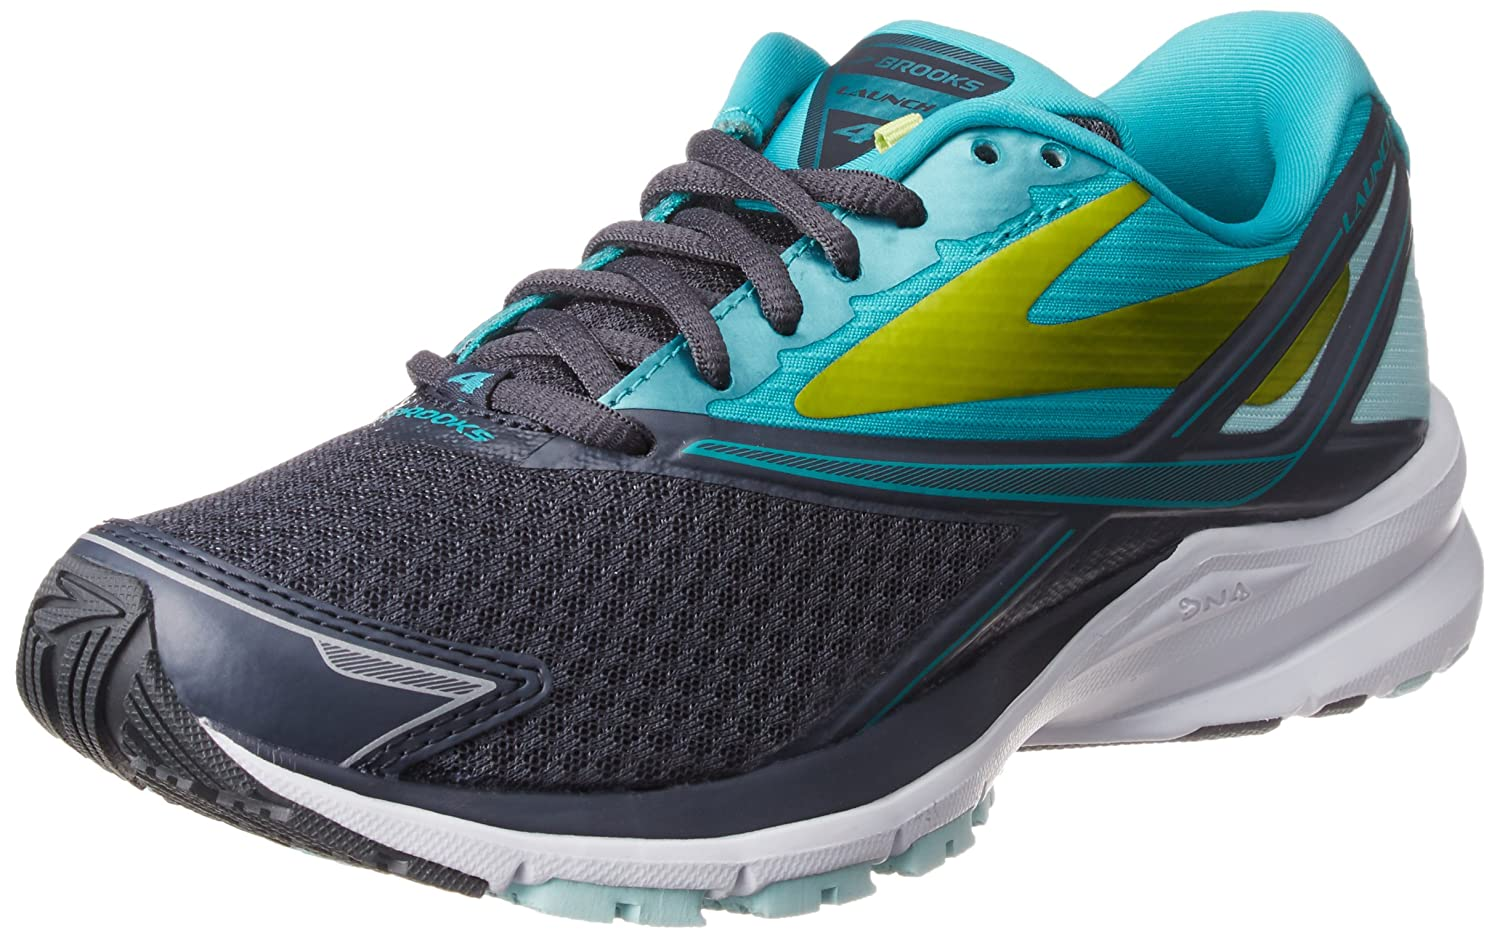 Anthracite Ceramic Lime Punch Brooks Women's Ghost 11 Running shoes